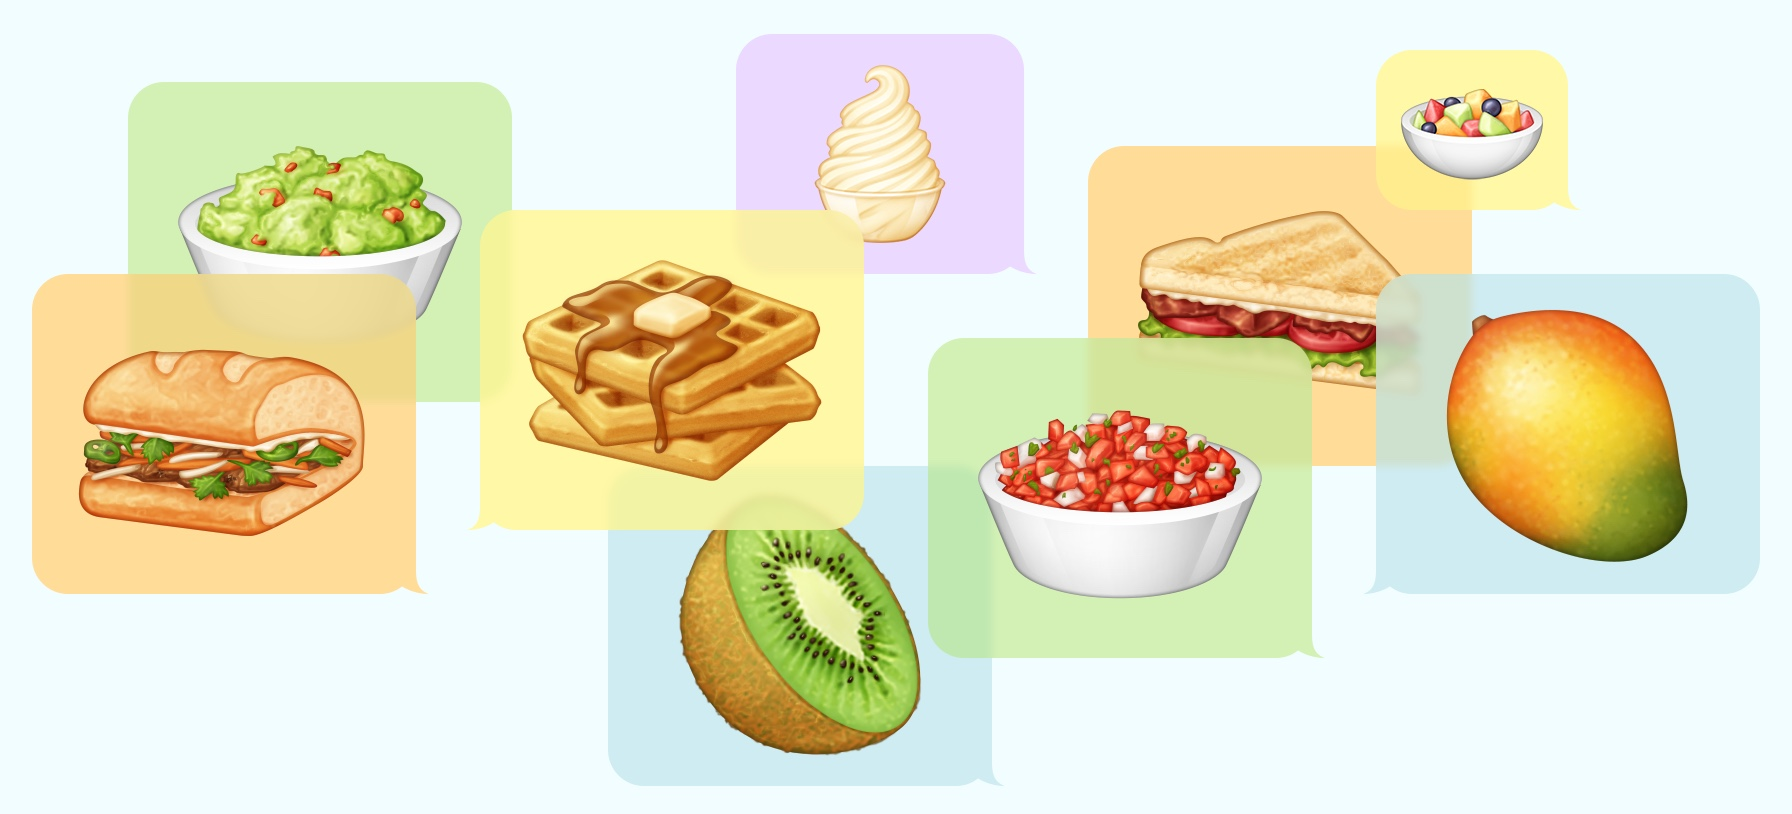 snacks-imessage-stickers-by-parakeet